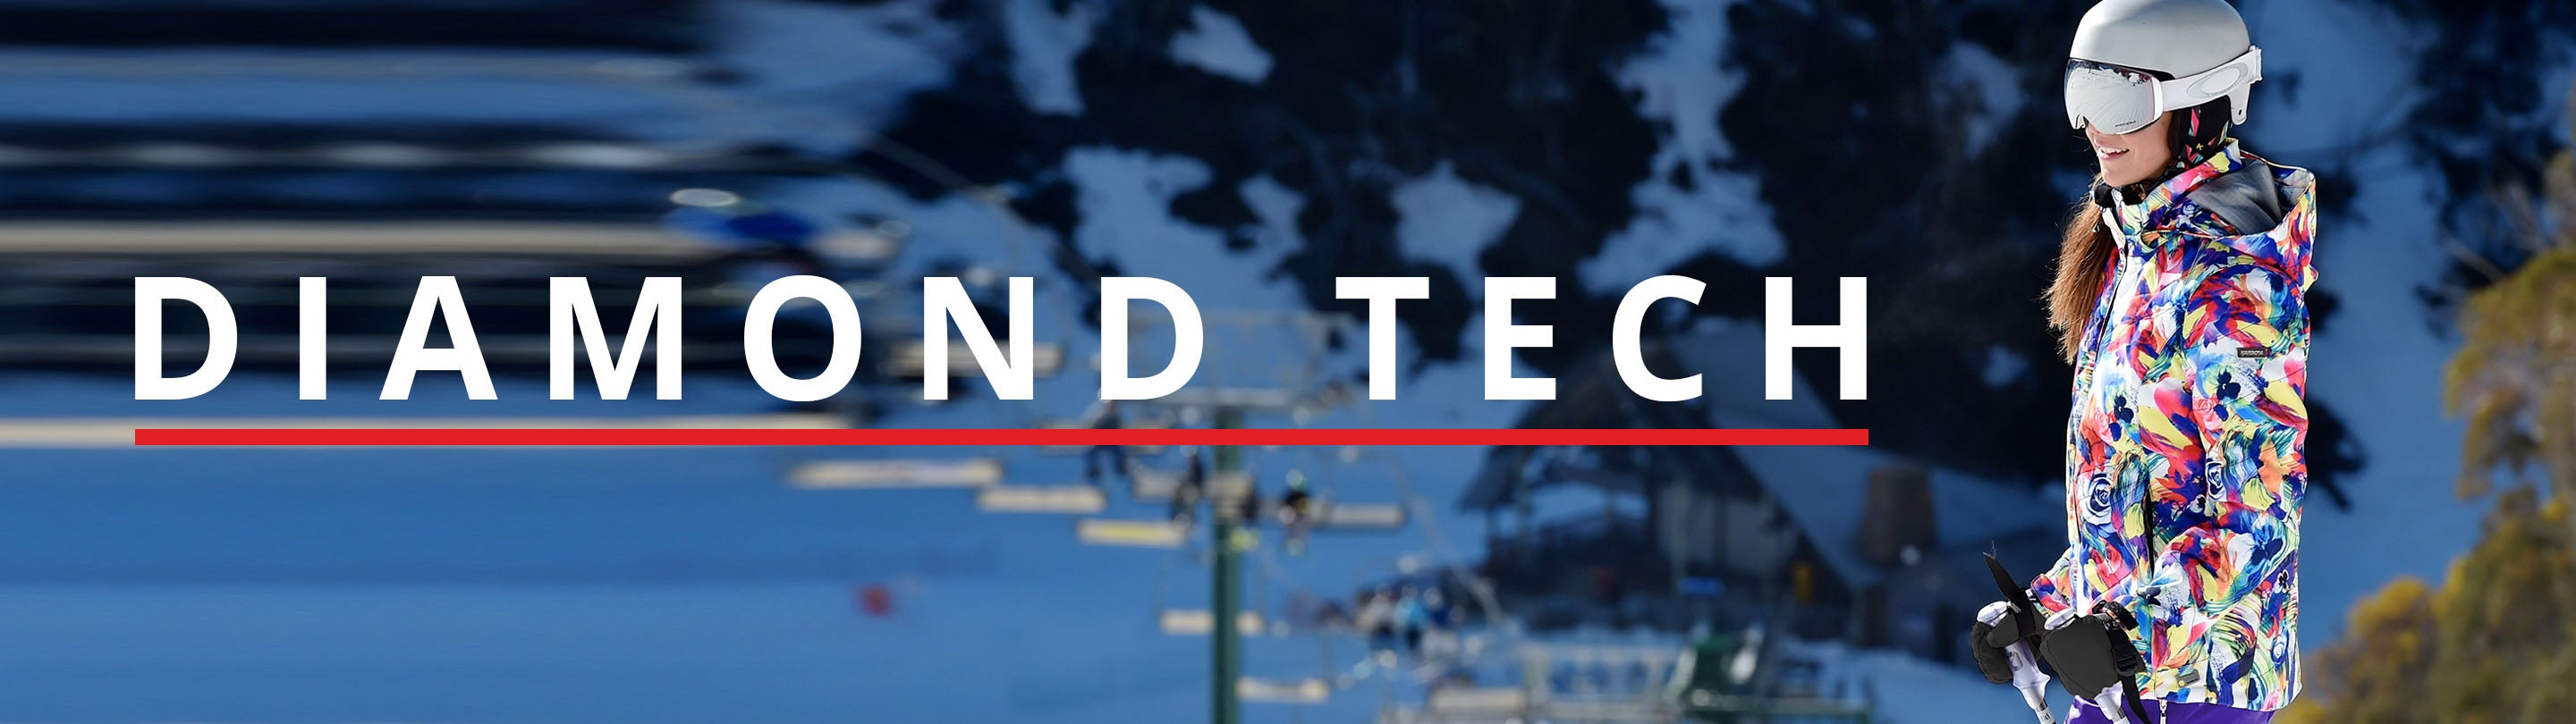 Diamond Tech Banner